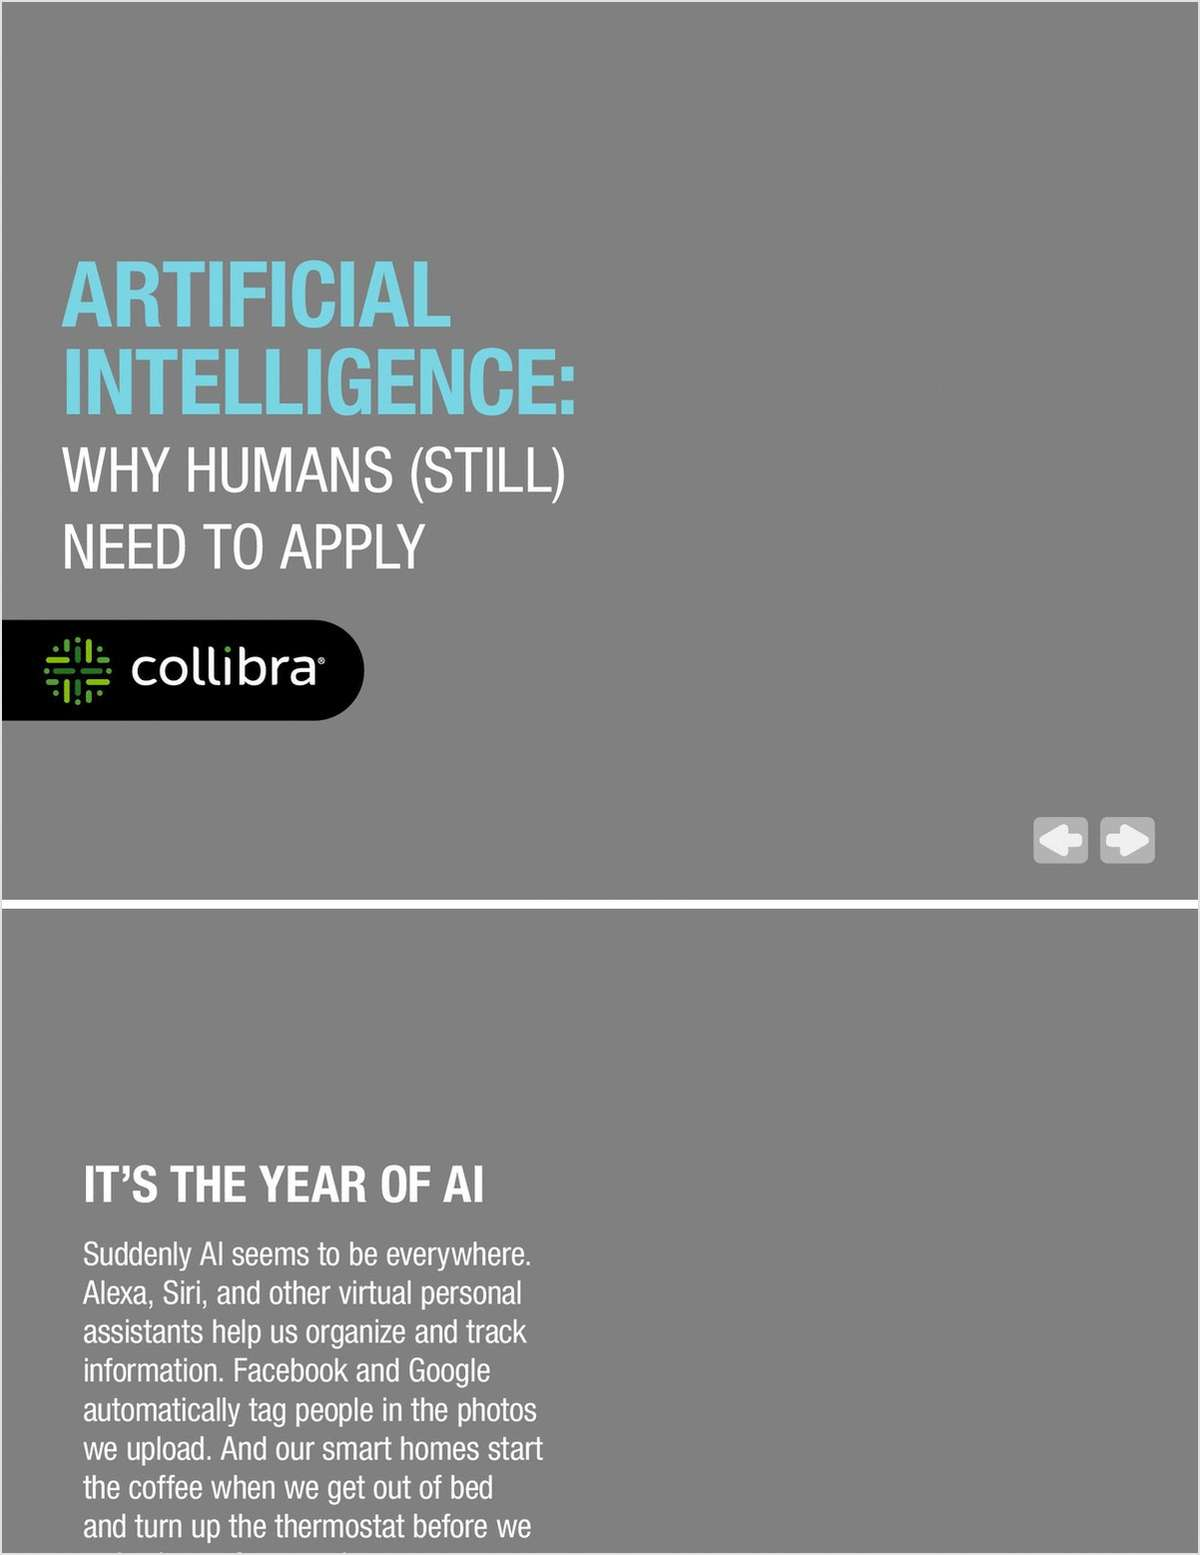 Artificial Intelligence: Why Humans (Still) Need to Apply